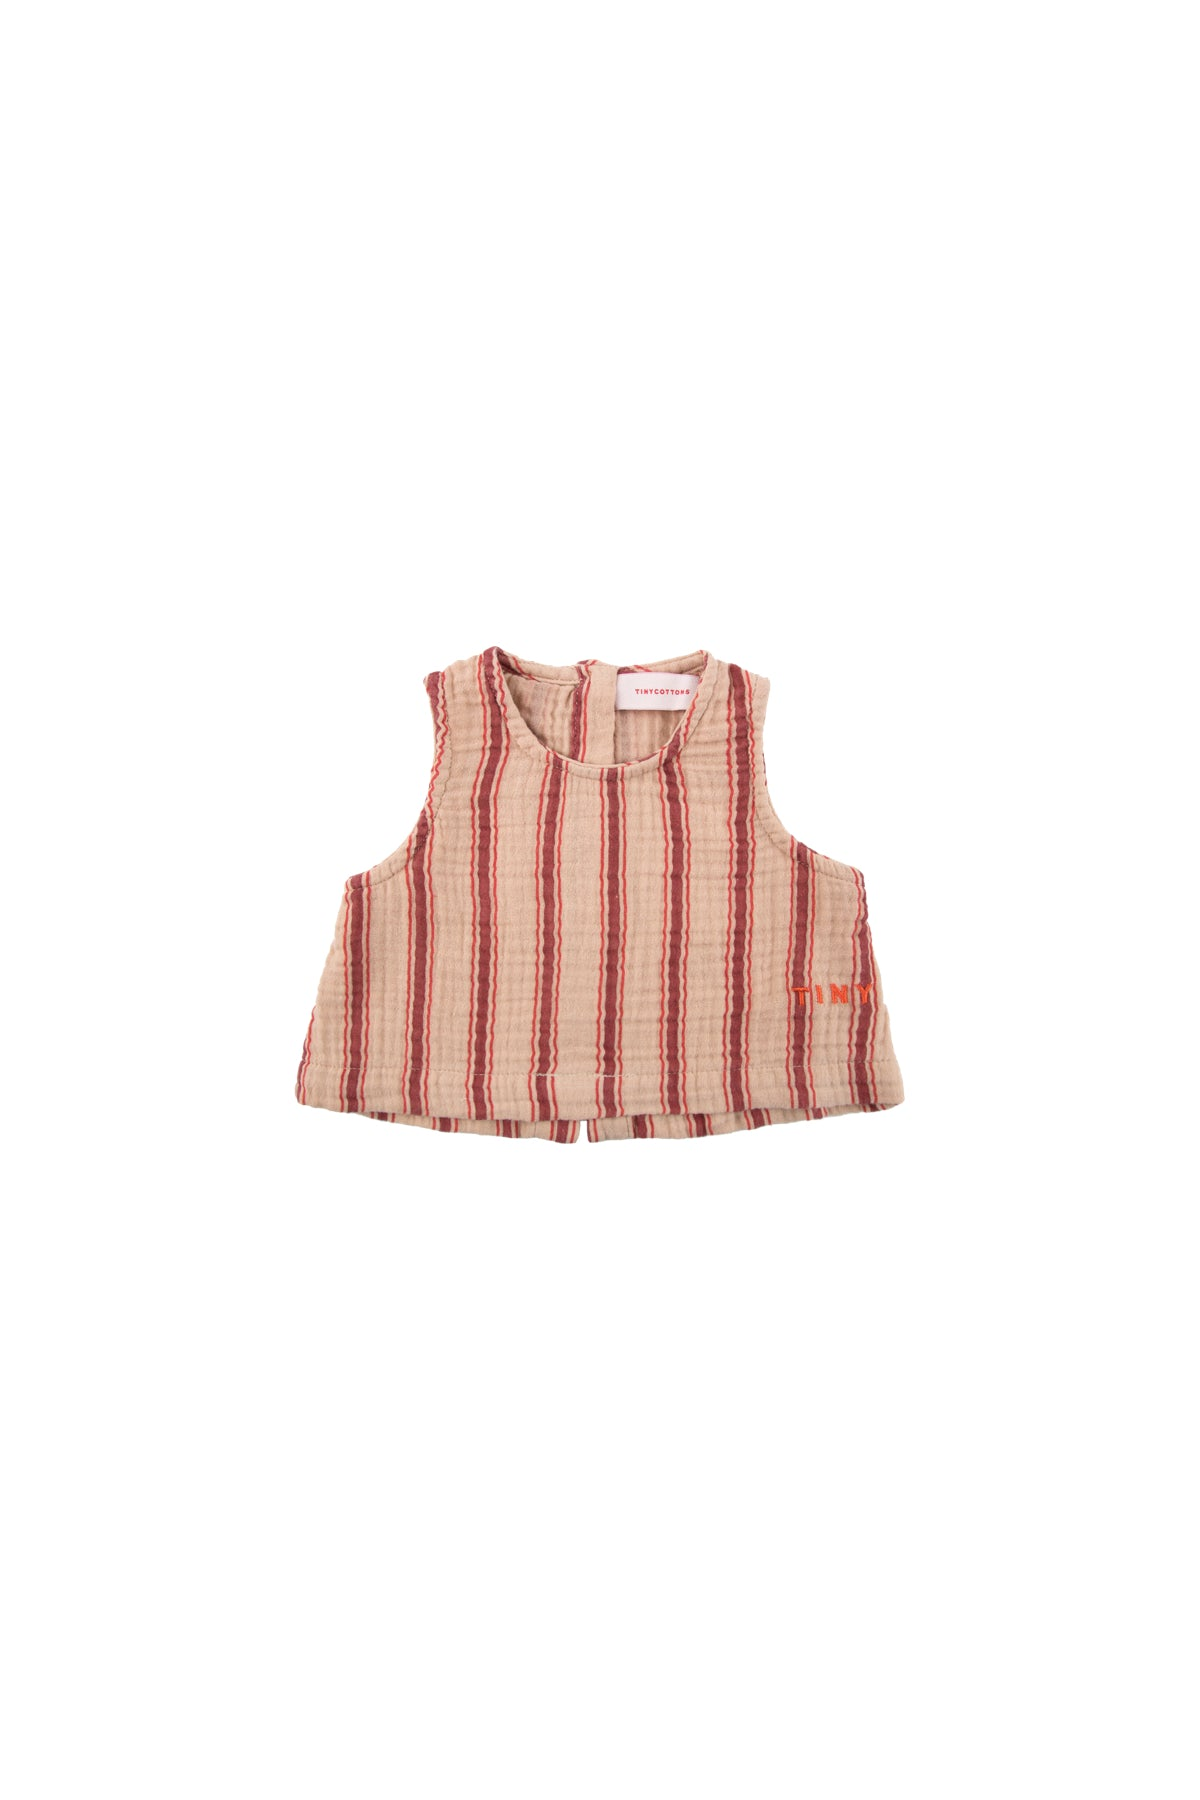 Tiny Cottons Retro Stripes Baby Top